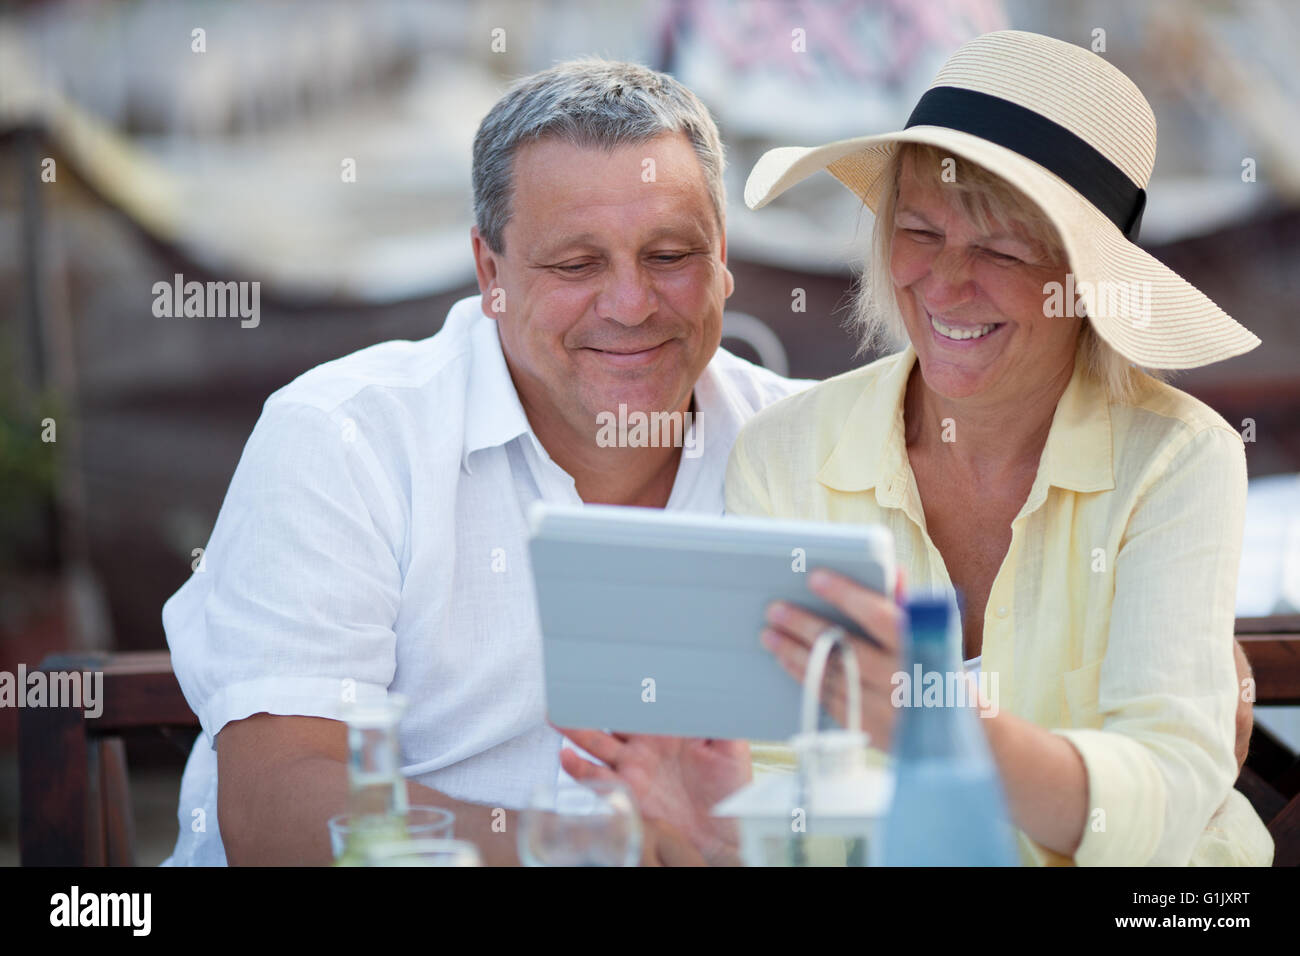 Smiling middle-aged couple using a tablet - Stock Image